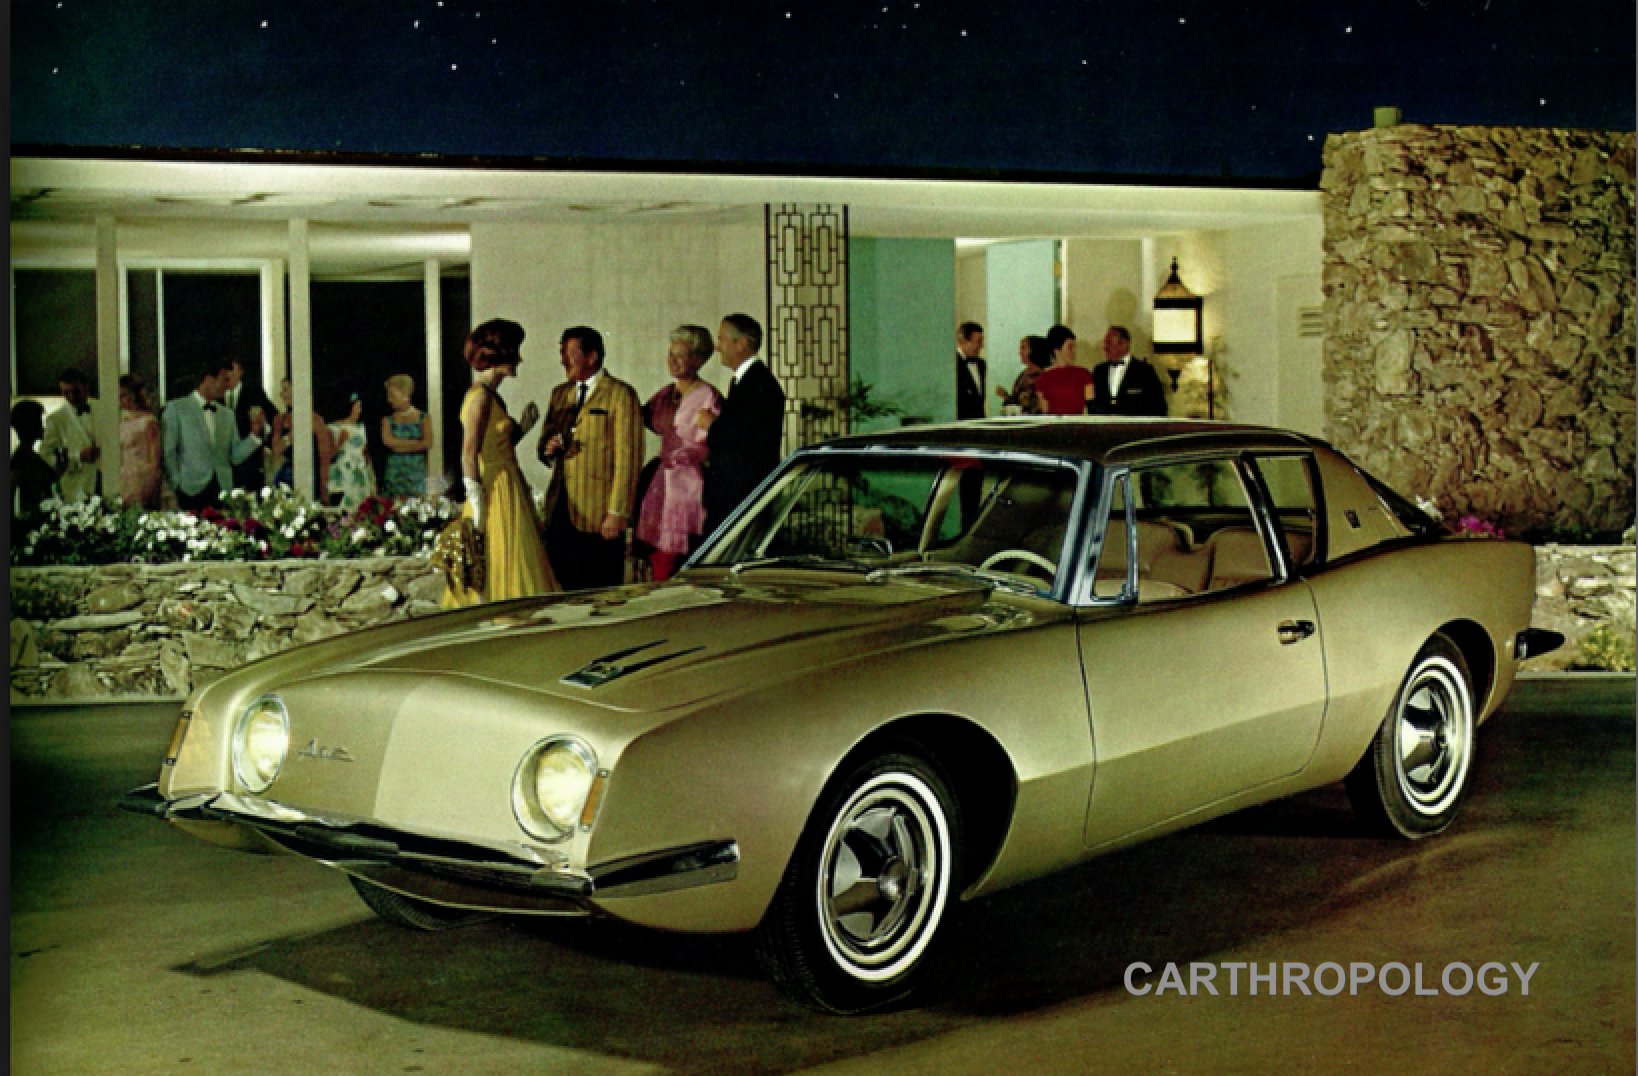 Publicity Shots For The Avanti Initially Used Palm Springs Architectural Backdrops The Car Was Conceived In Palm